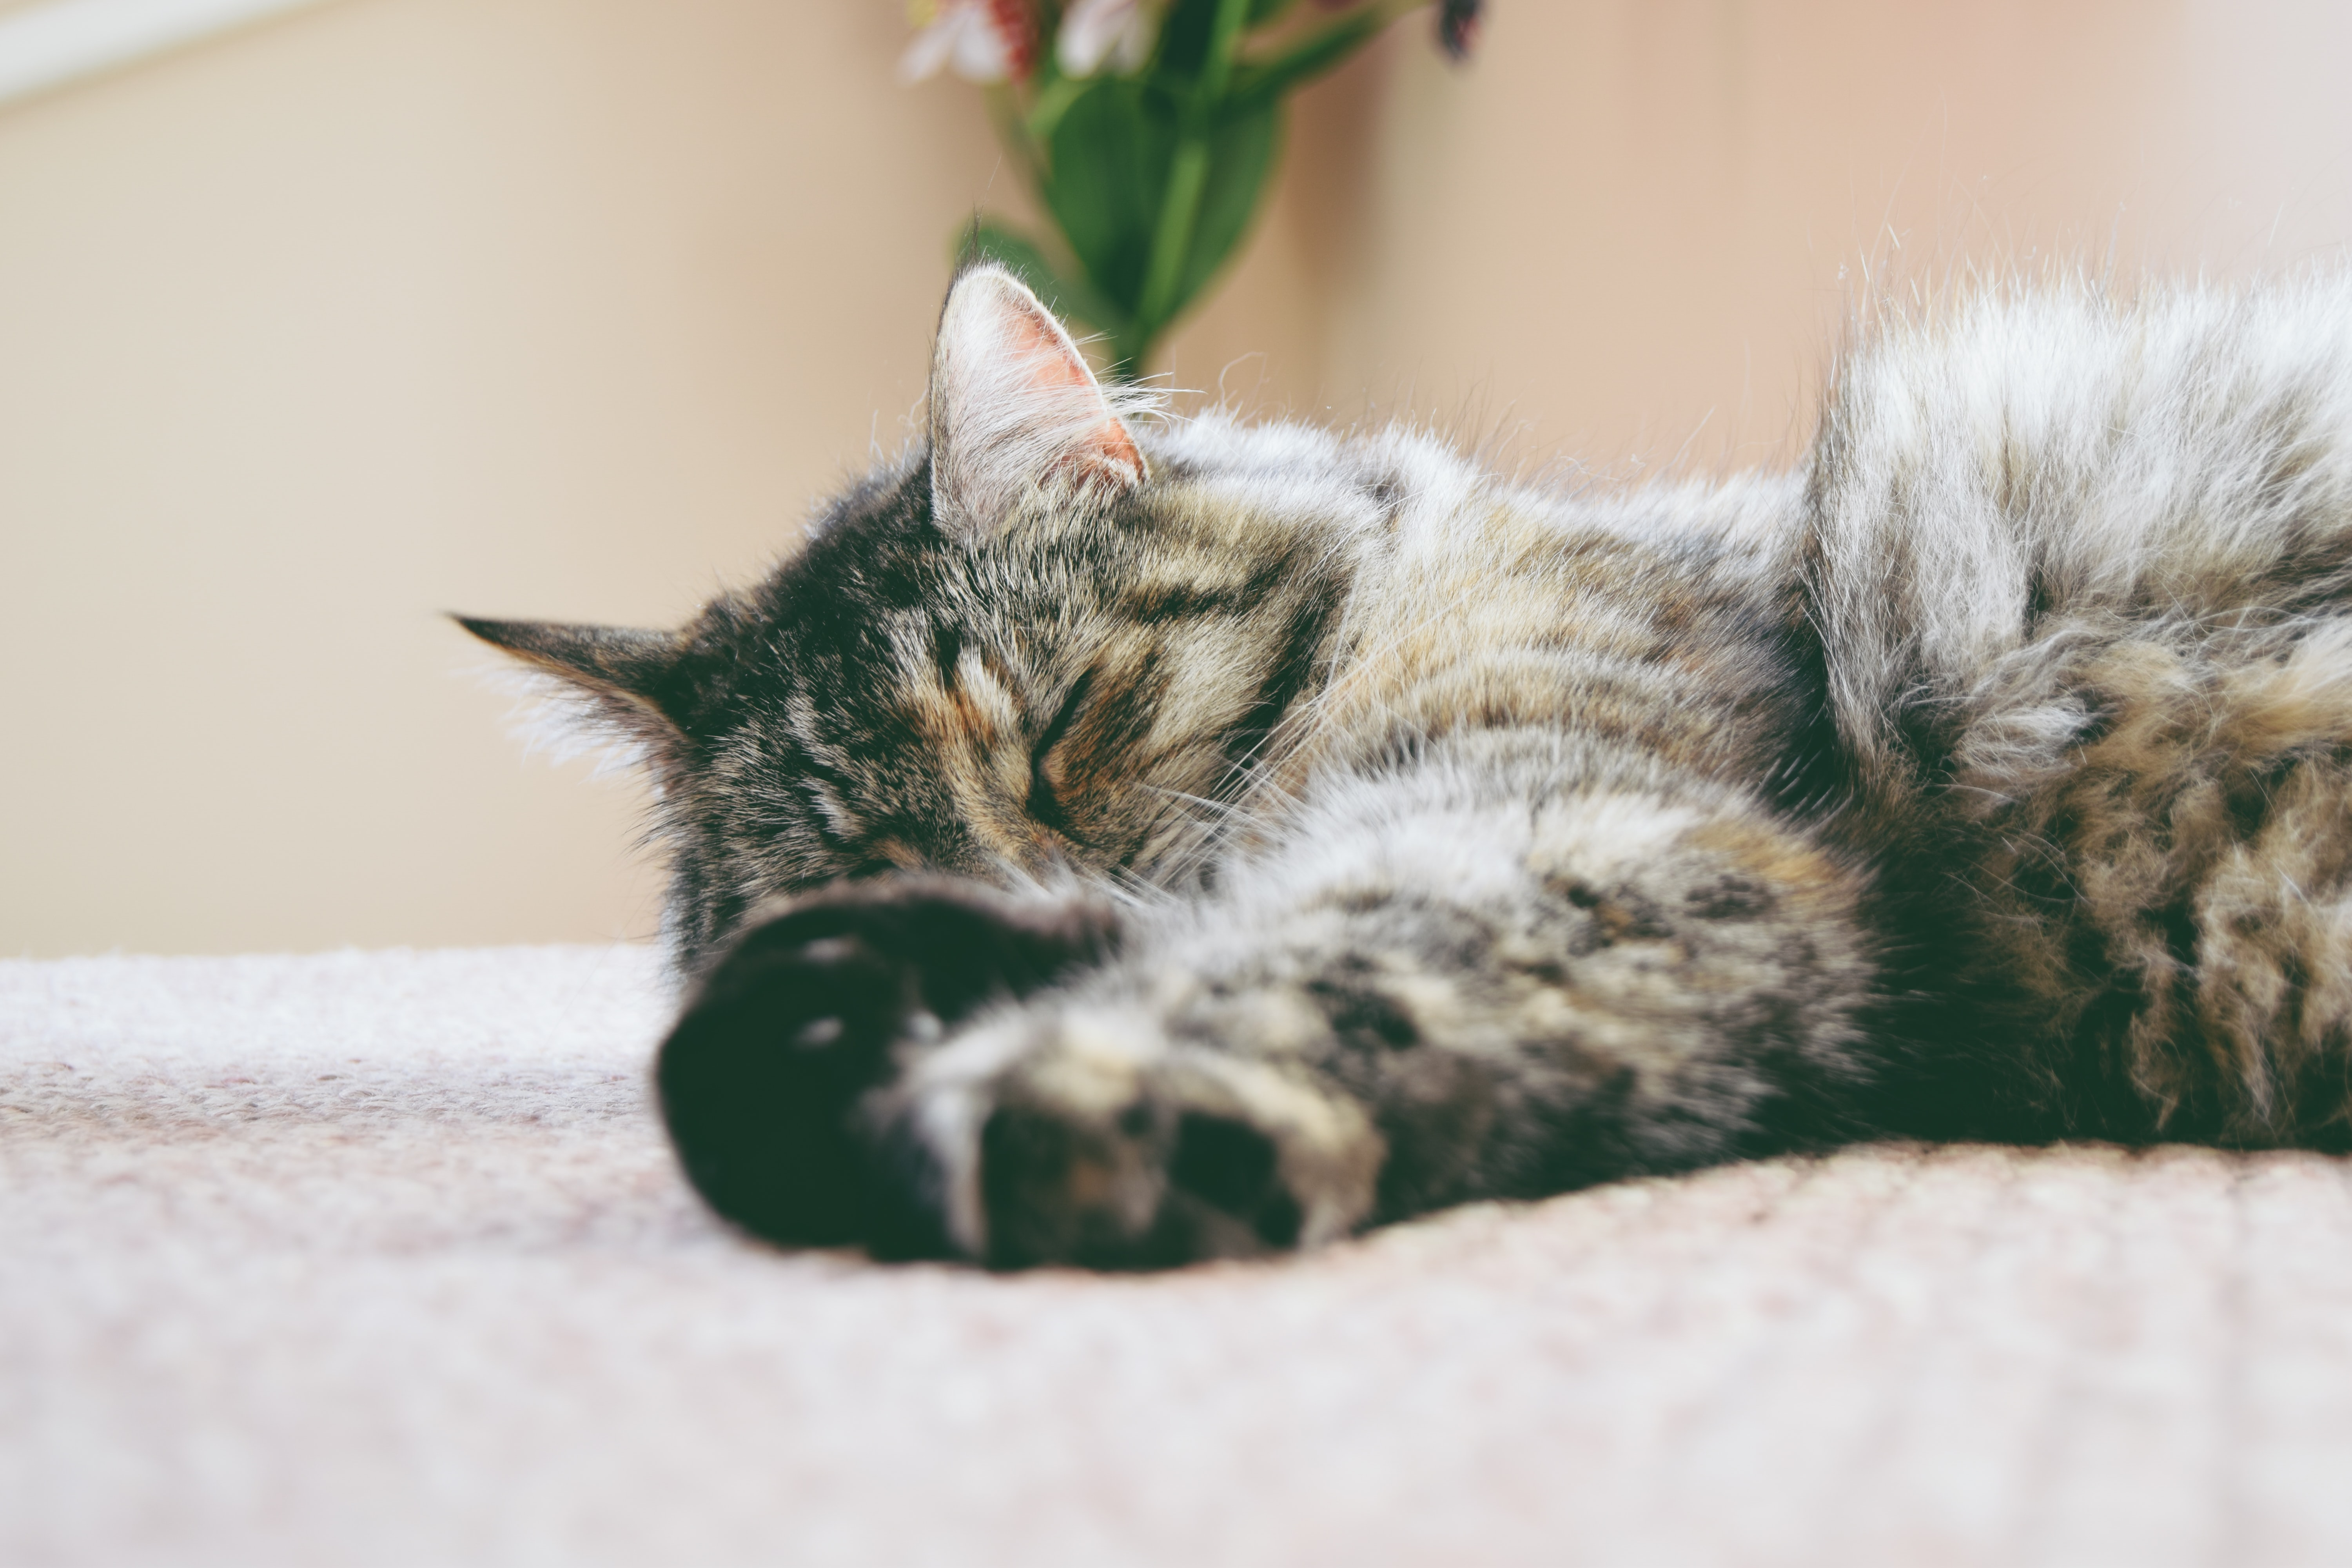 Close-up of a long-haired cat sleeping on the carpet